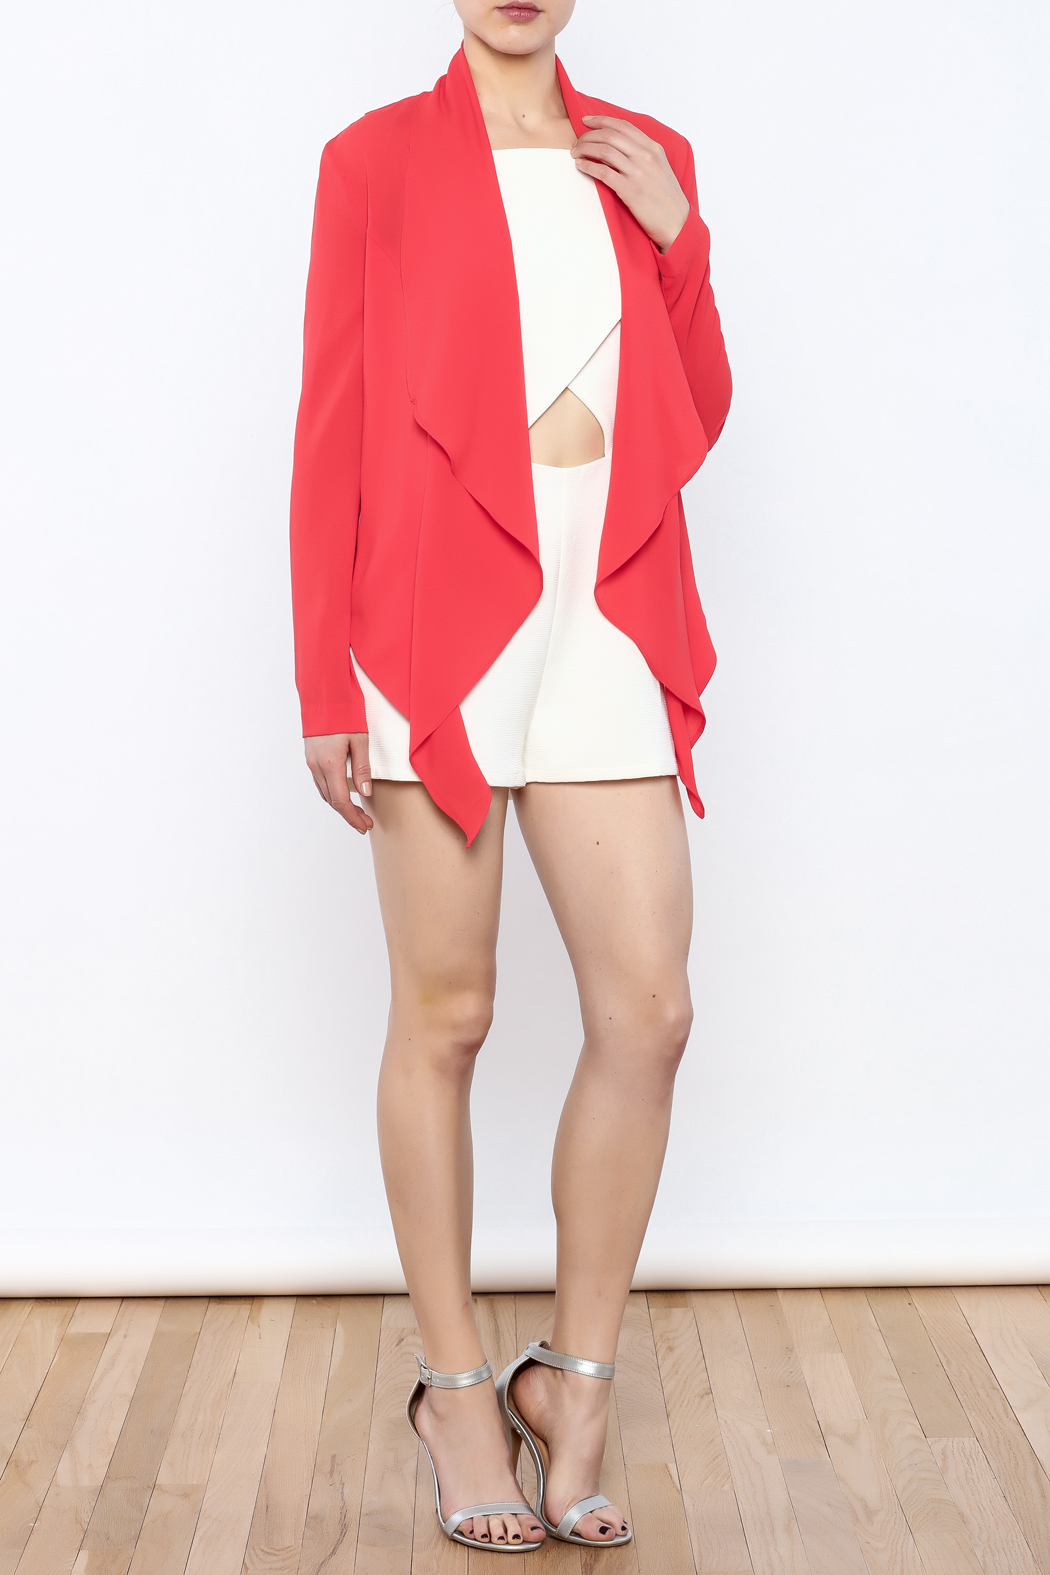 Aryn K Cropped Ruffle Light Jacket - Front Full Image